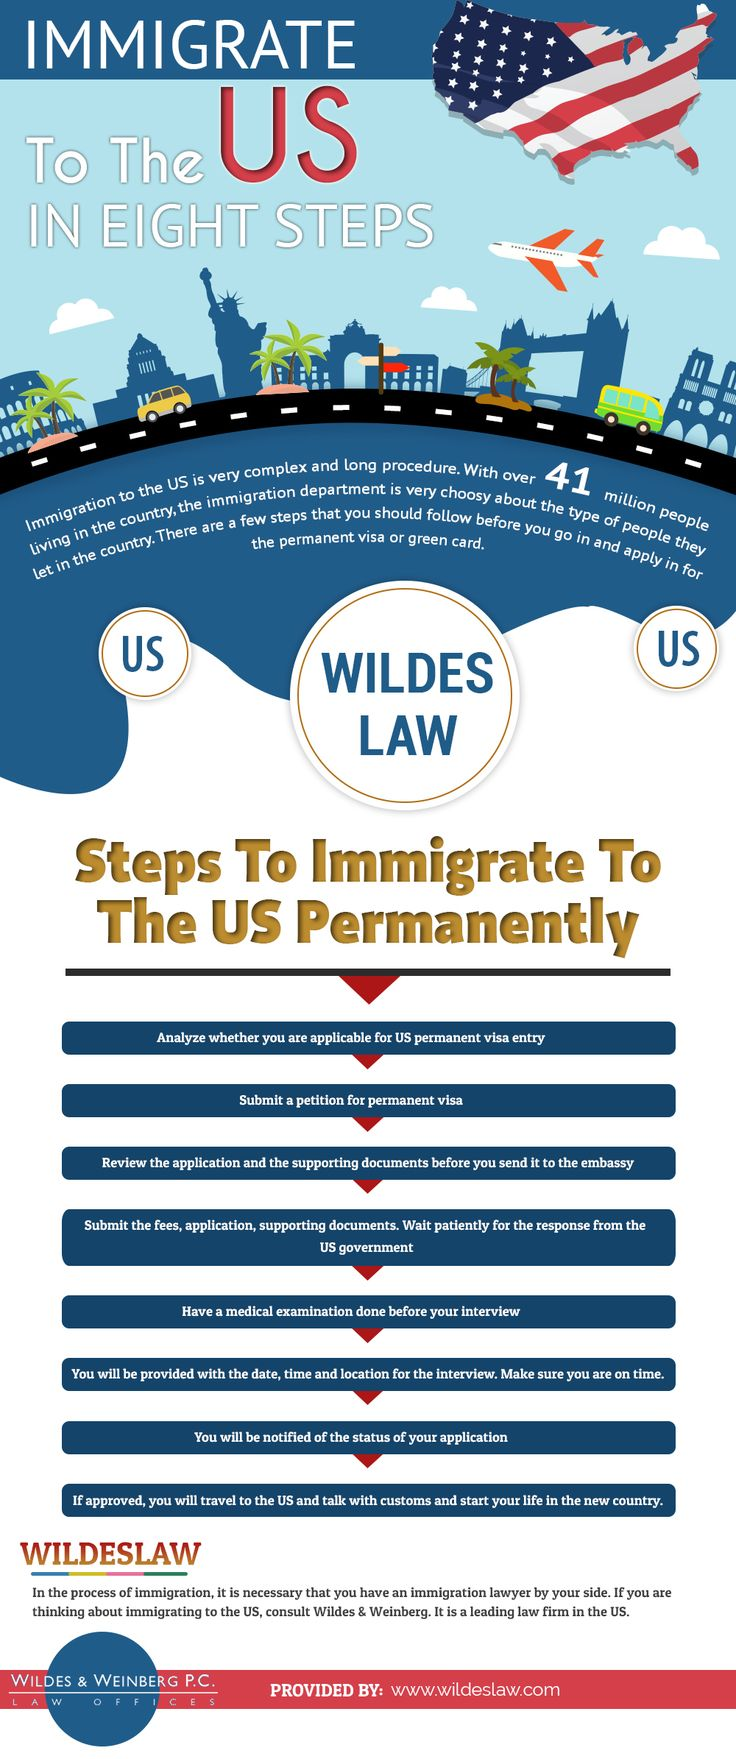 Wildes & Weinberg P. is the best immigration law firm in NYC, New Jersey & NJ, known for their qualified immigration lawyers & deportation attorneys.